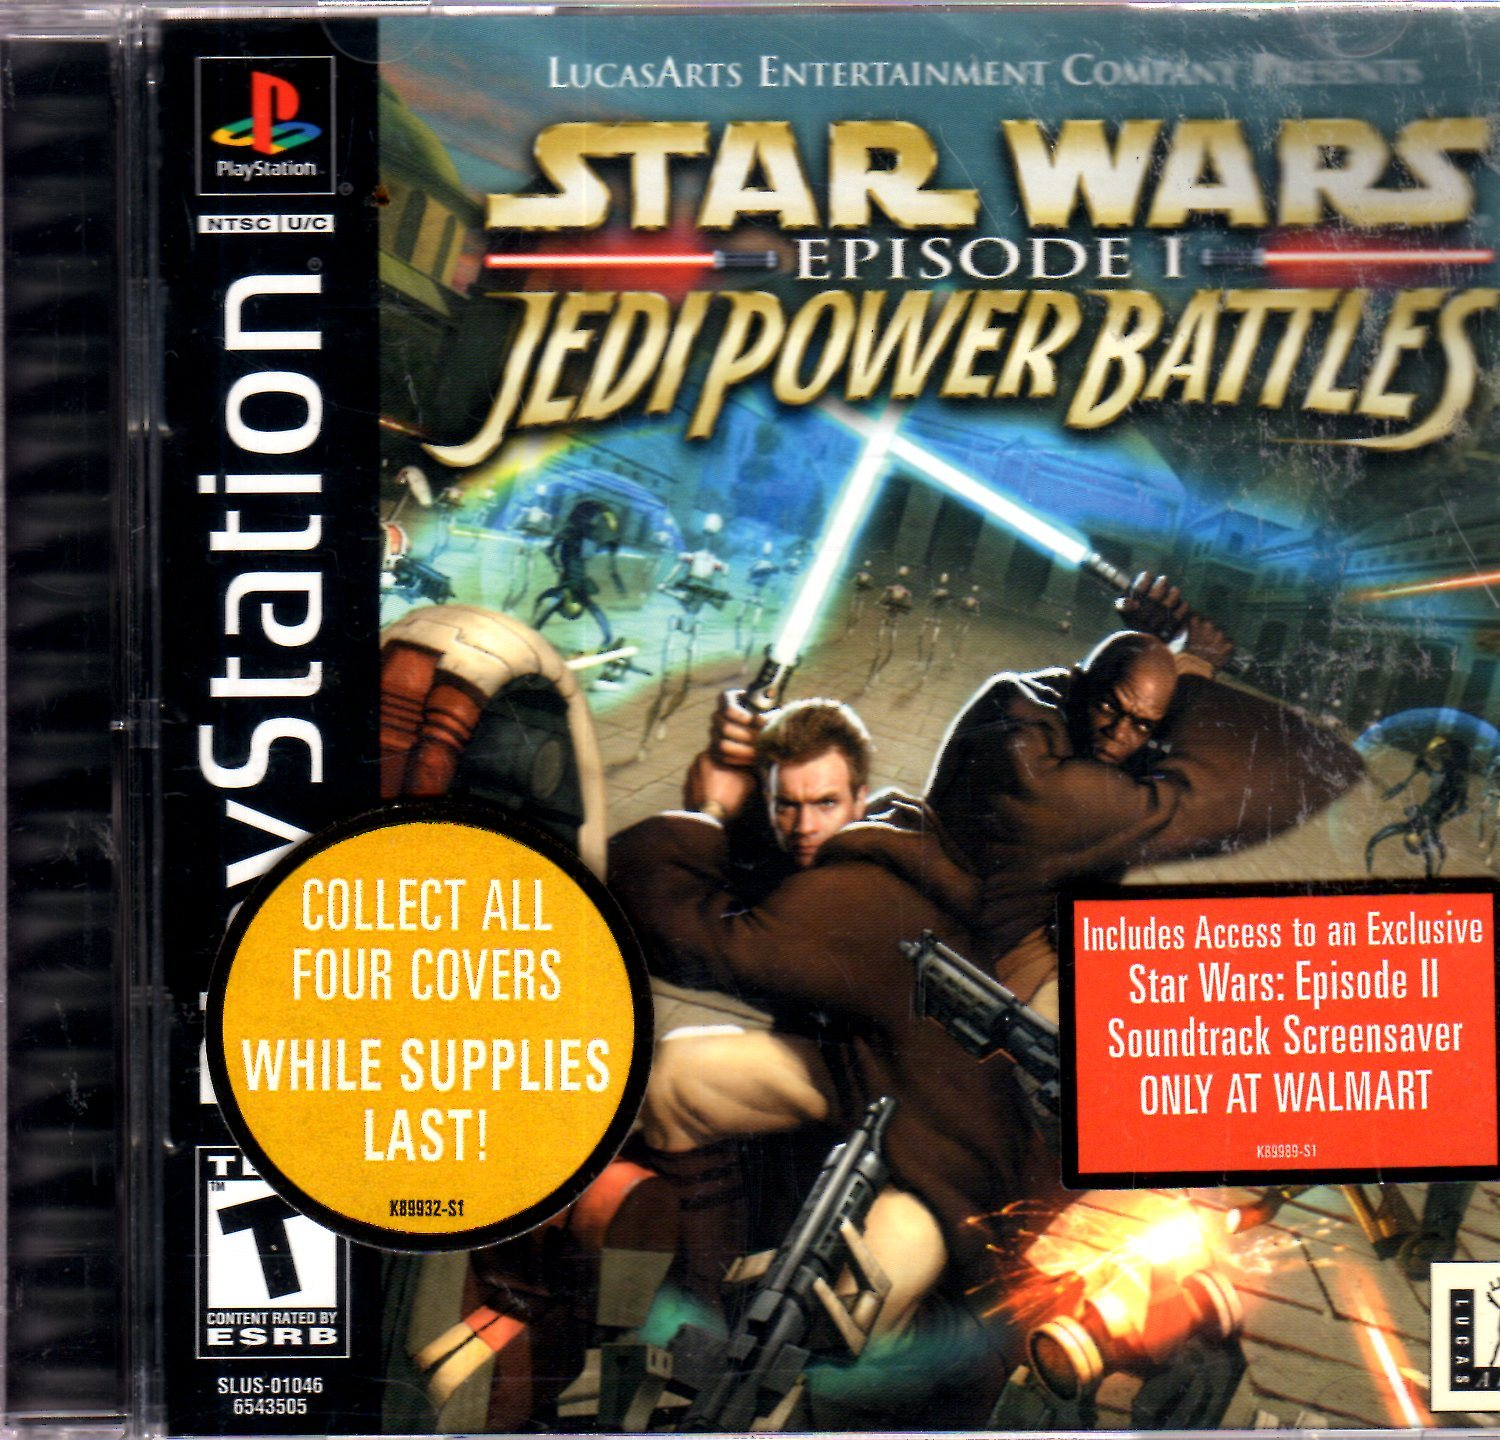 PlayStation - Star Wars Episode I Jedi Power Battles